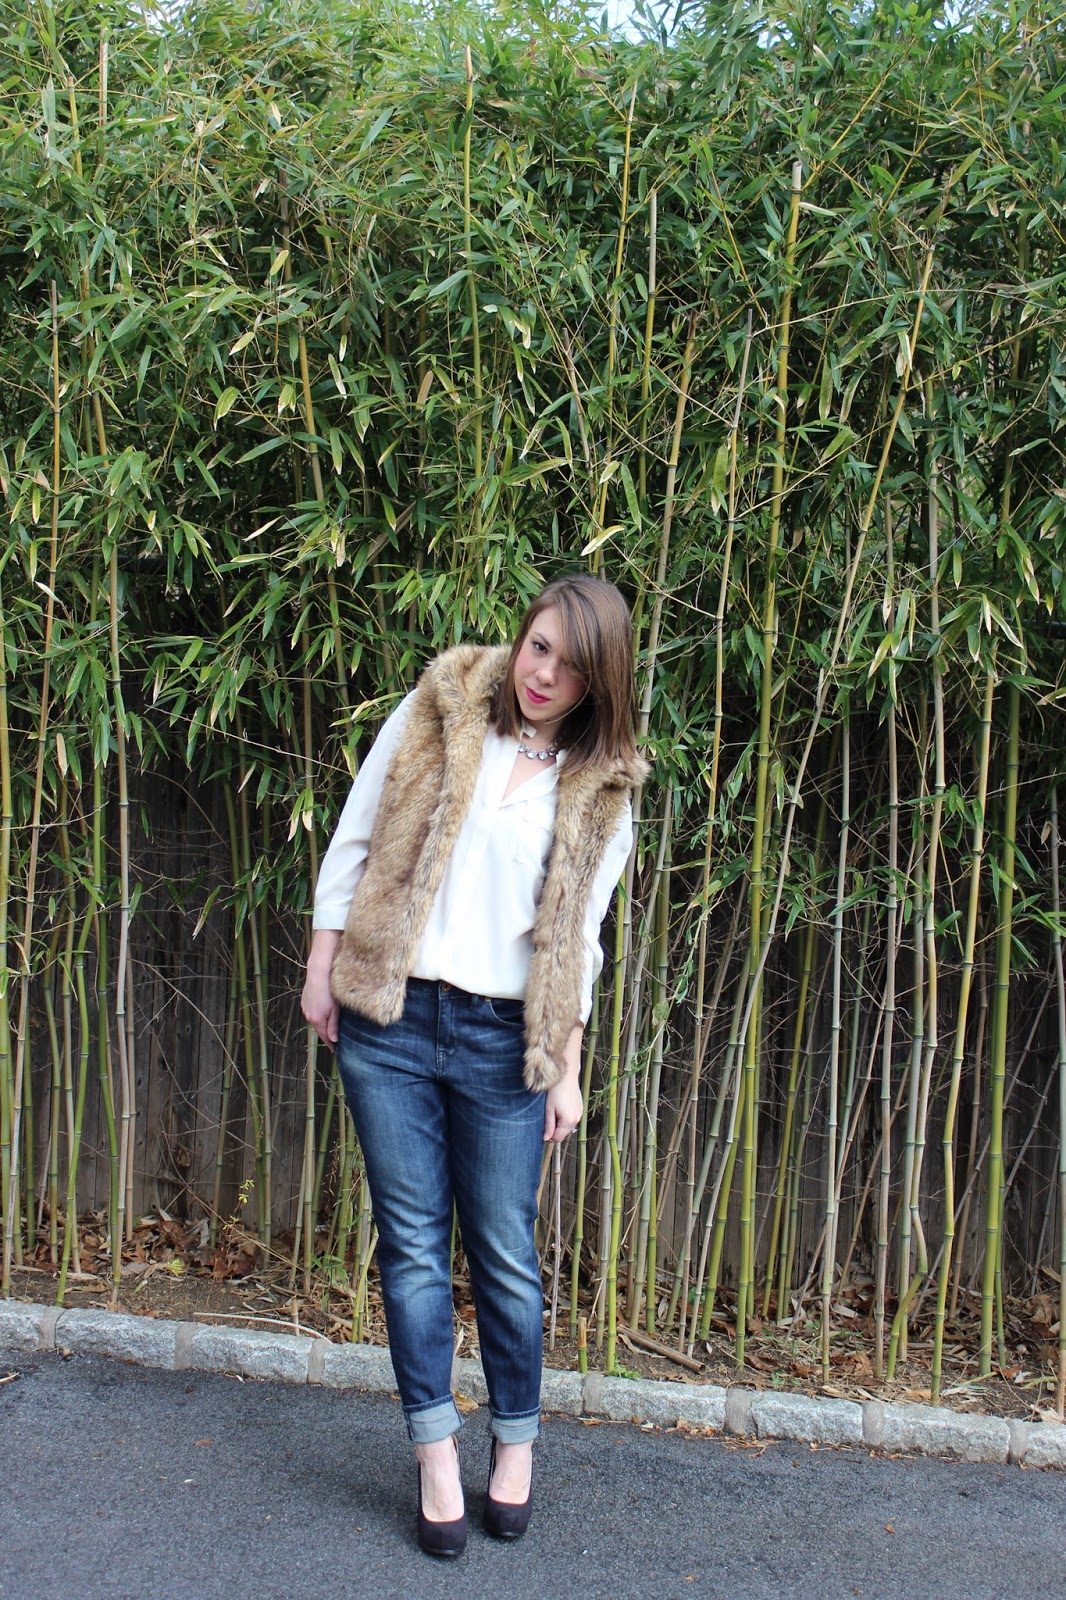 f4db6710671 Blouse & Jeans: Madewell Vest: Zara Necklace: J. Crew Shoes: Target